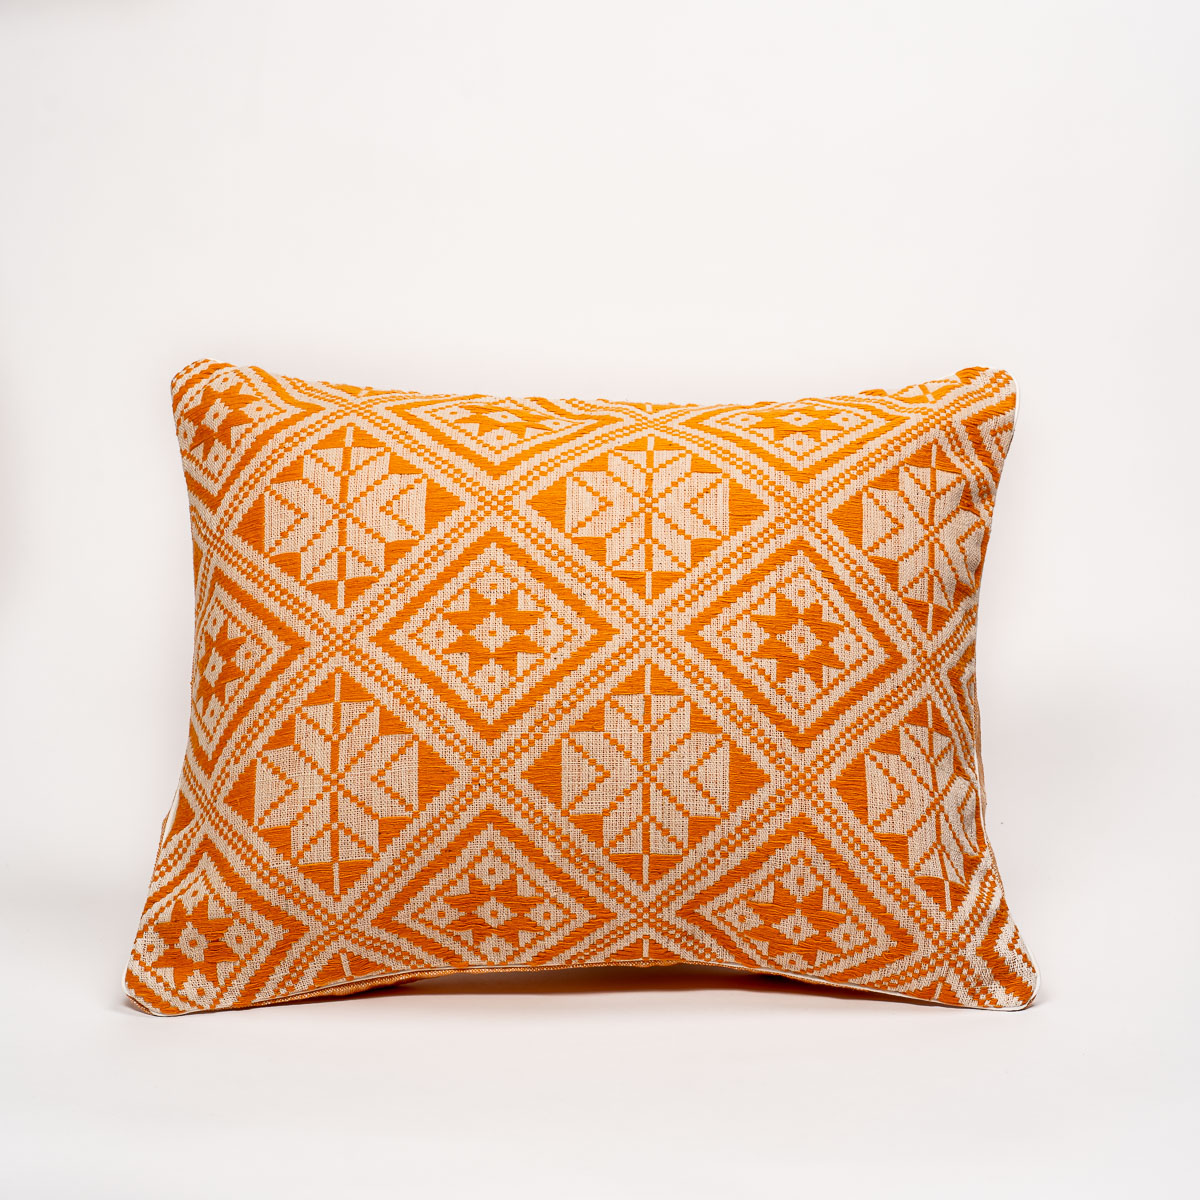 2020-10-JMDUFOUR-TrendEthics-Packshot-coussin-dokmai-orange-grand-1-light